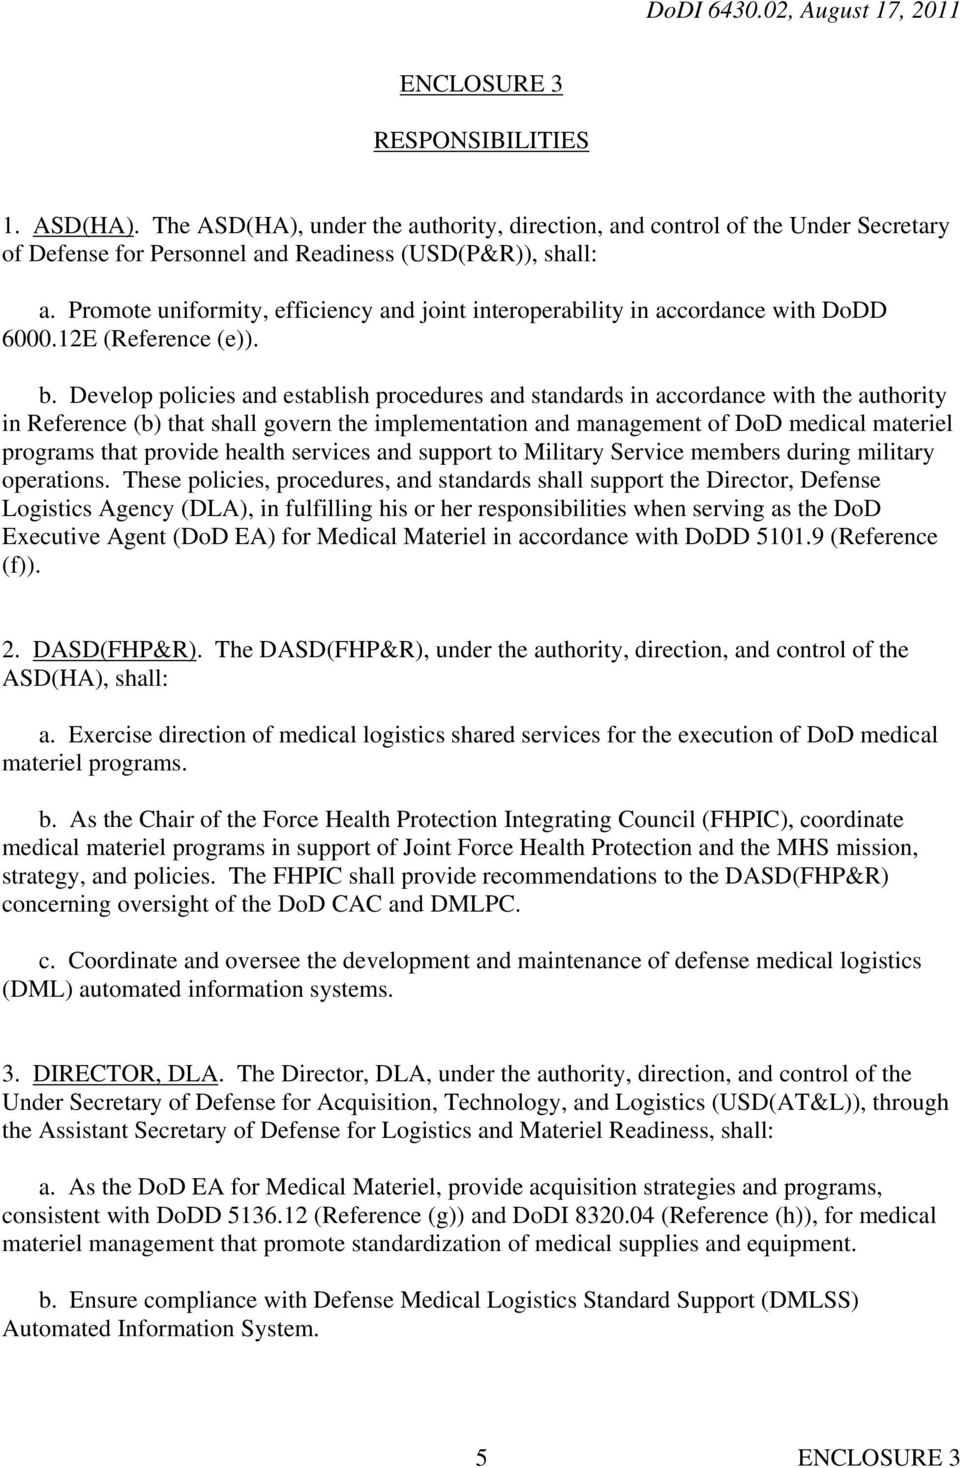 Develop policies and establish procedures and standards in accordance with the authority in Reference (b) that shall govern the implementation and management of DoD medical materiel programs that